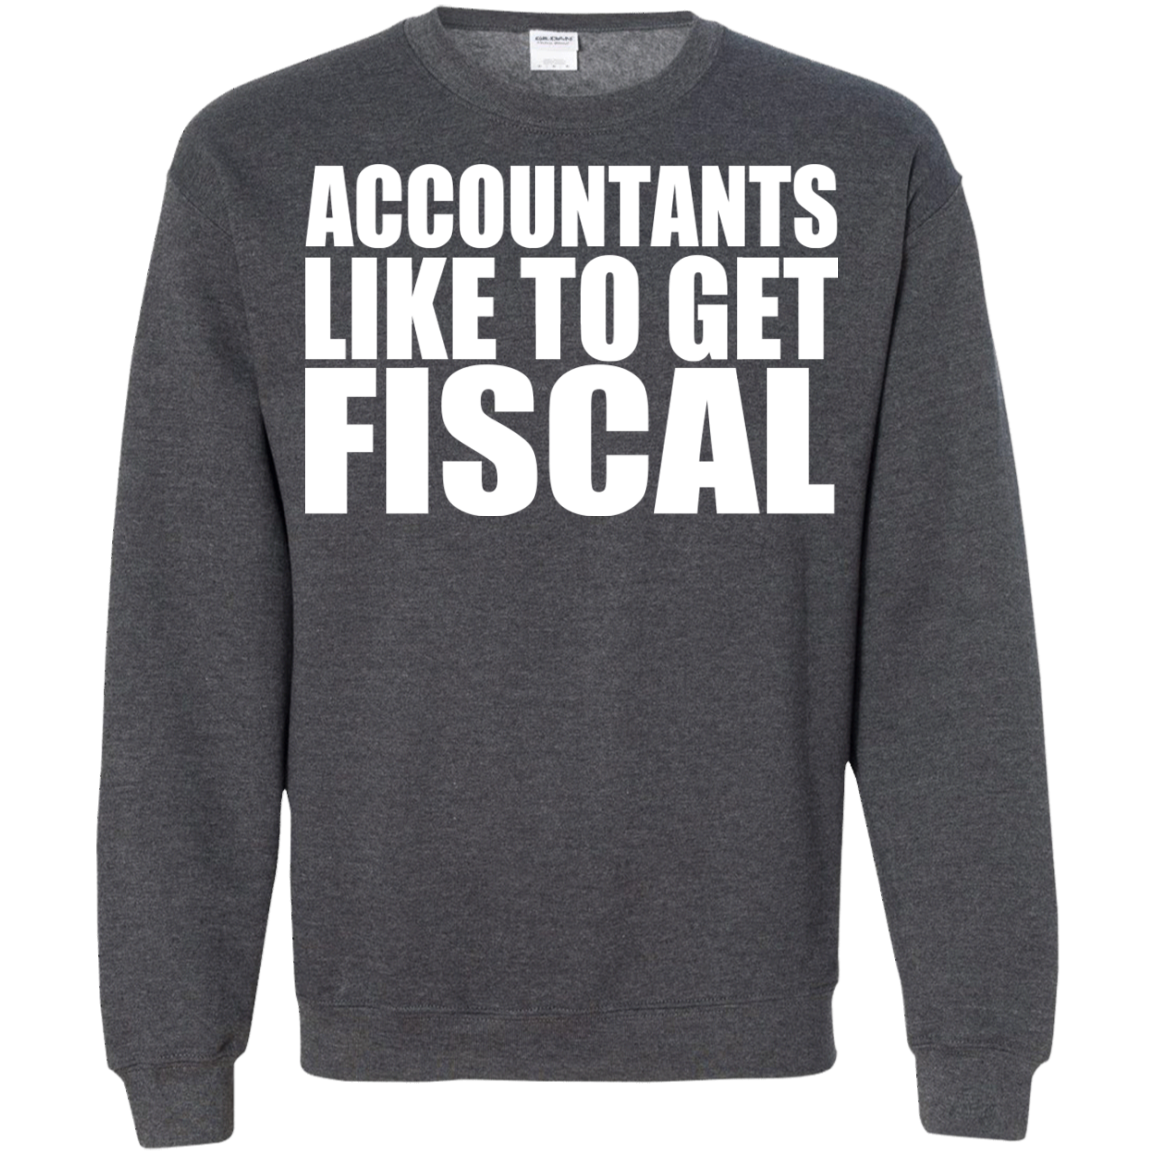 Accountants Like To Get Fiscal Sweatshirts